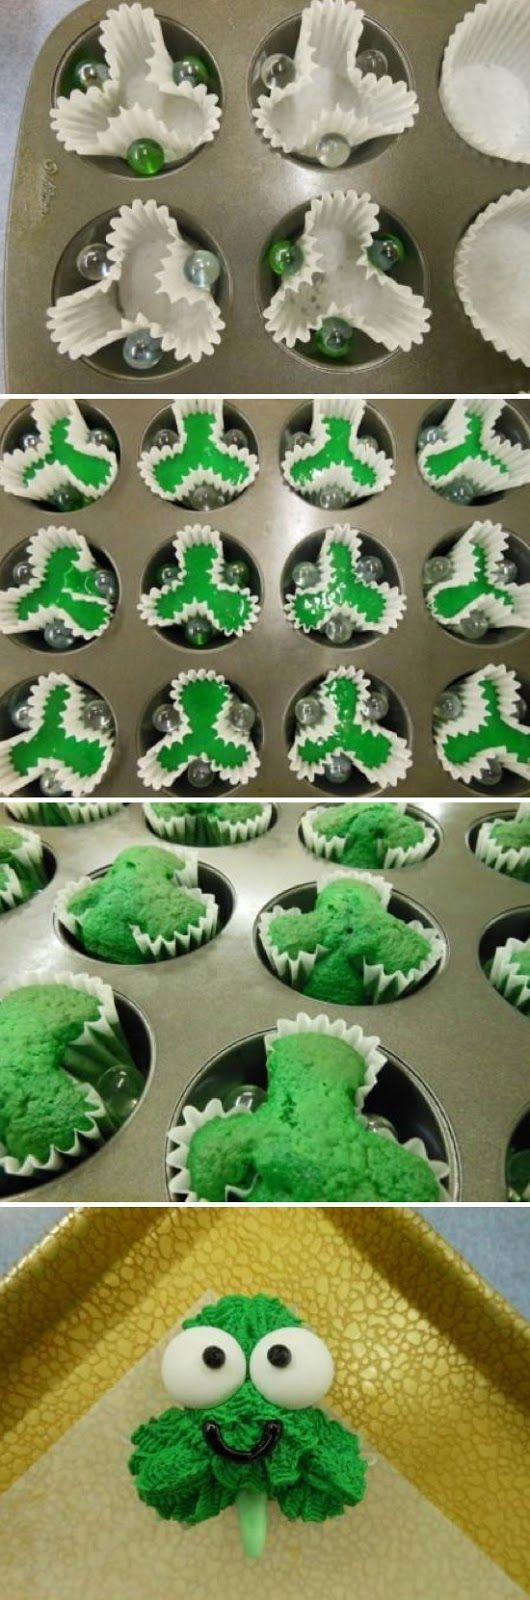 17 Best Images About St Patrick S Day On Pinterest Luck